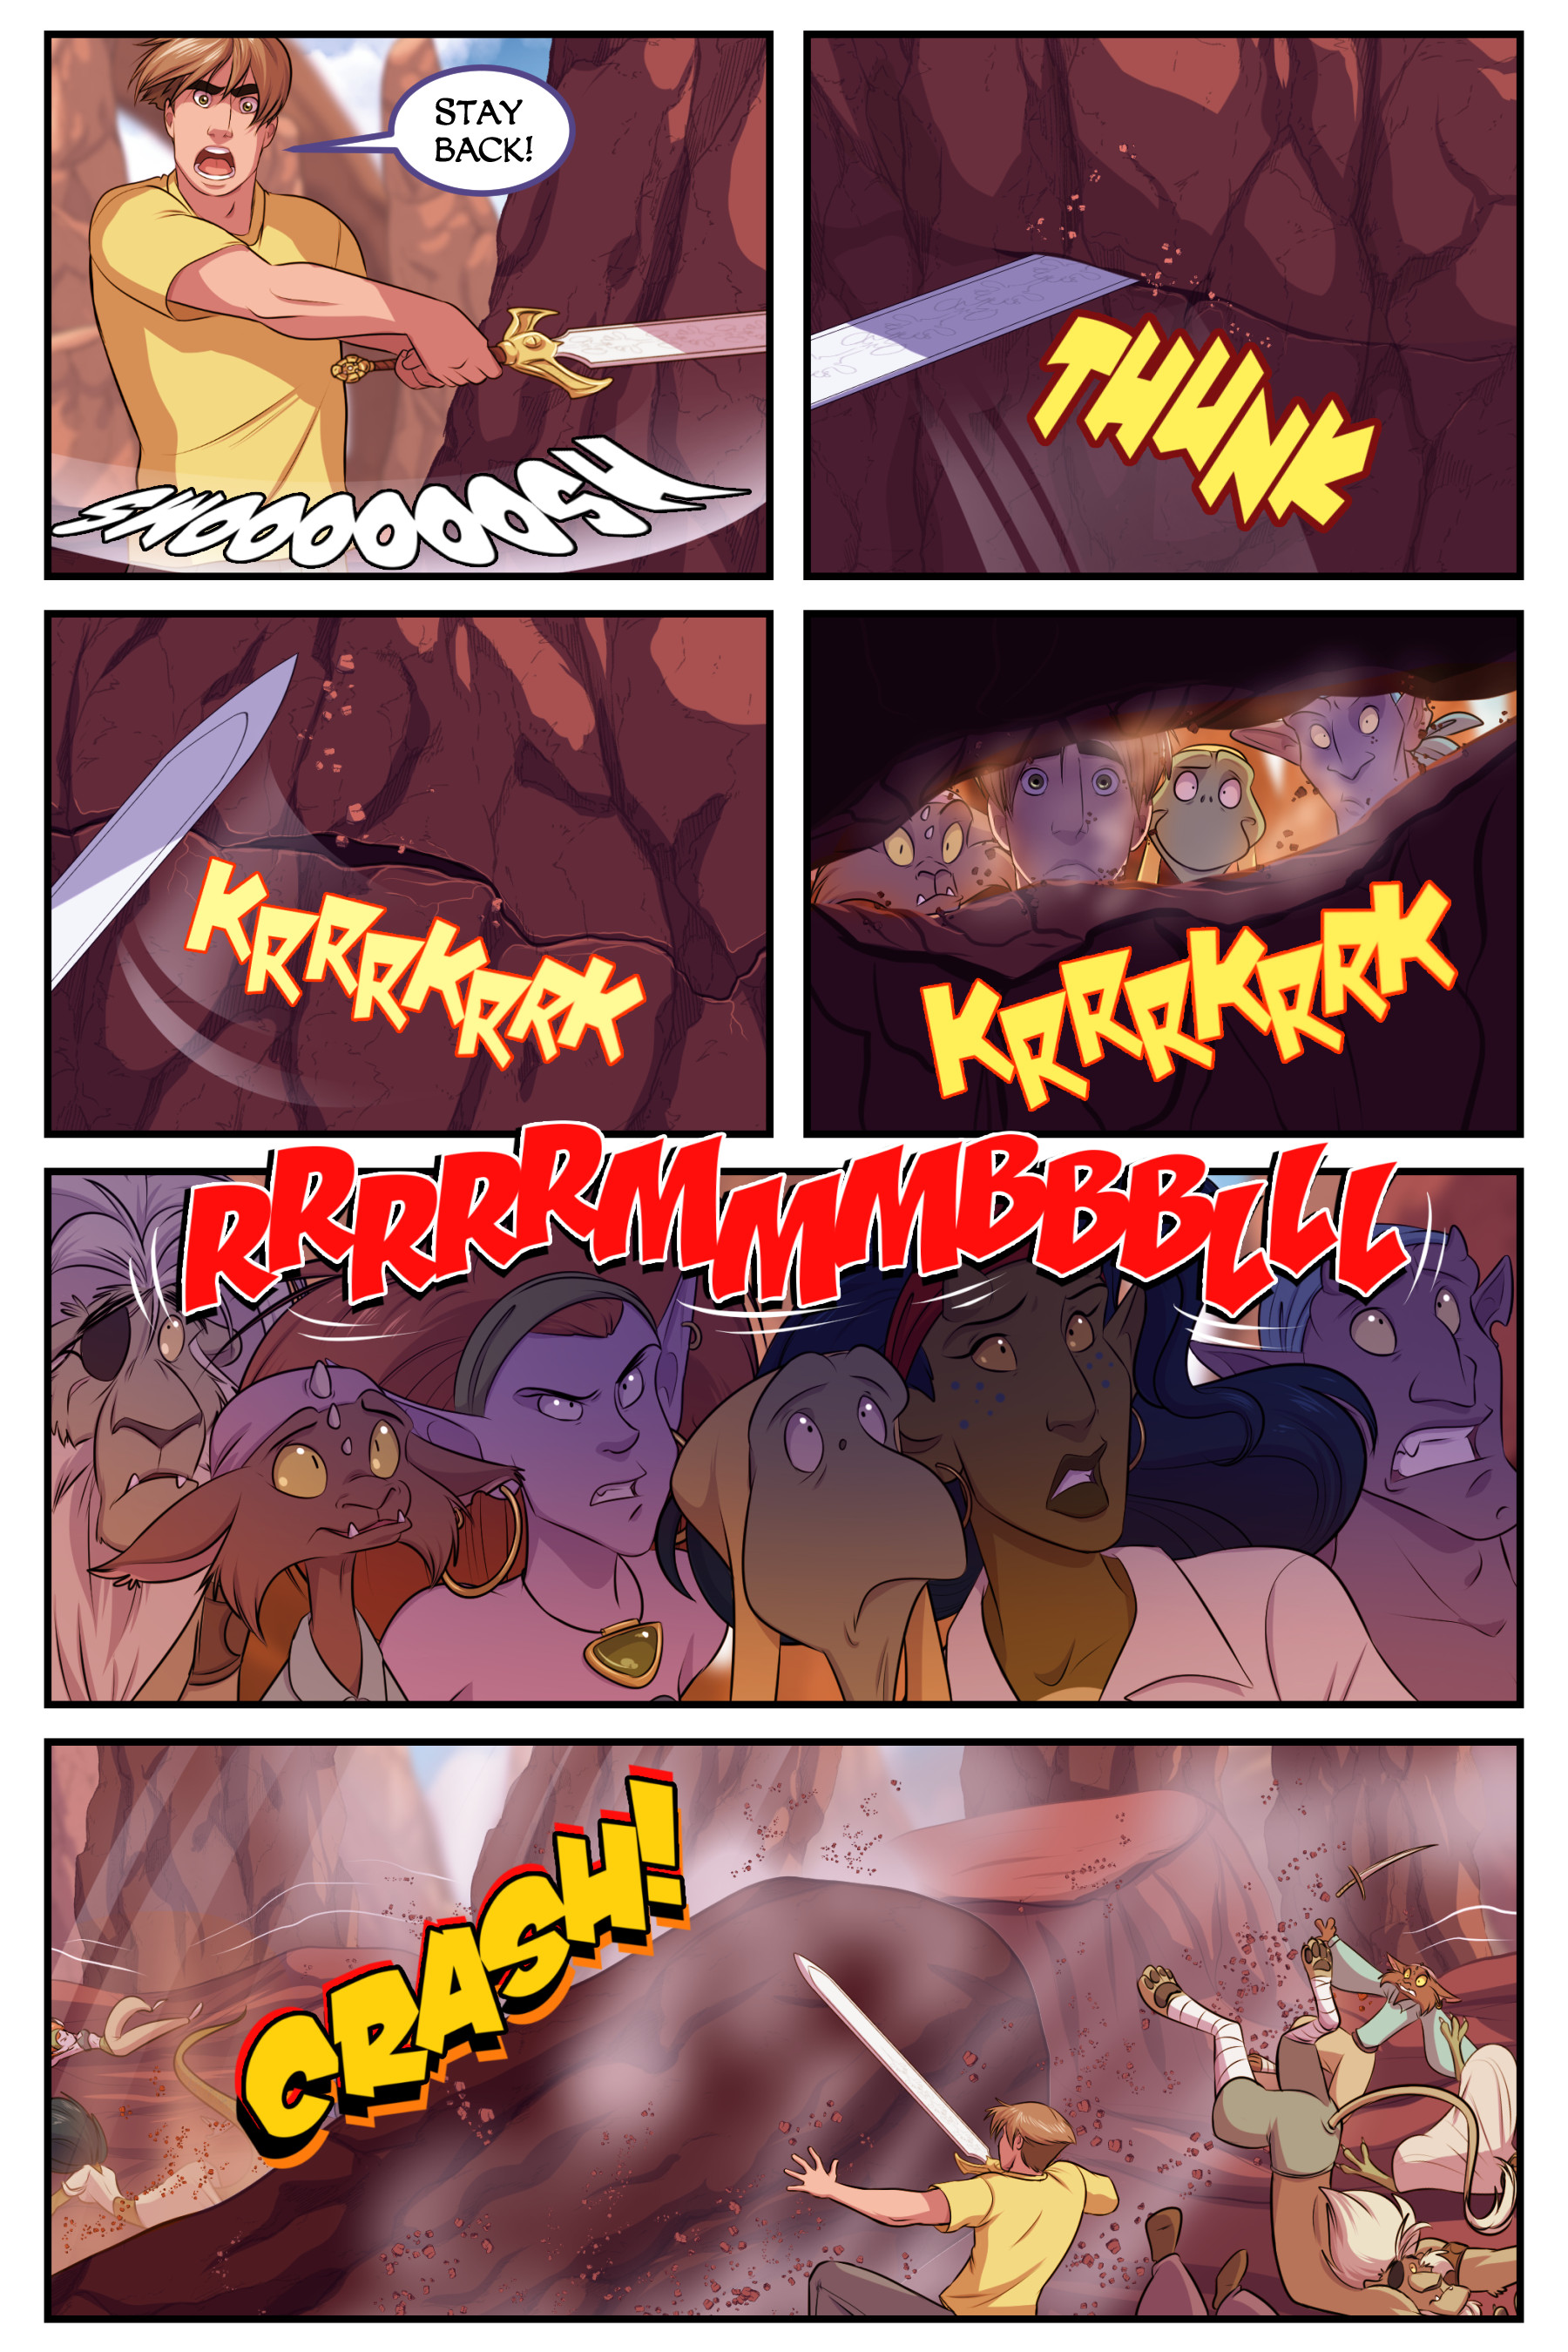 The Dreamland Chronicles Page 132…